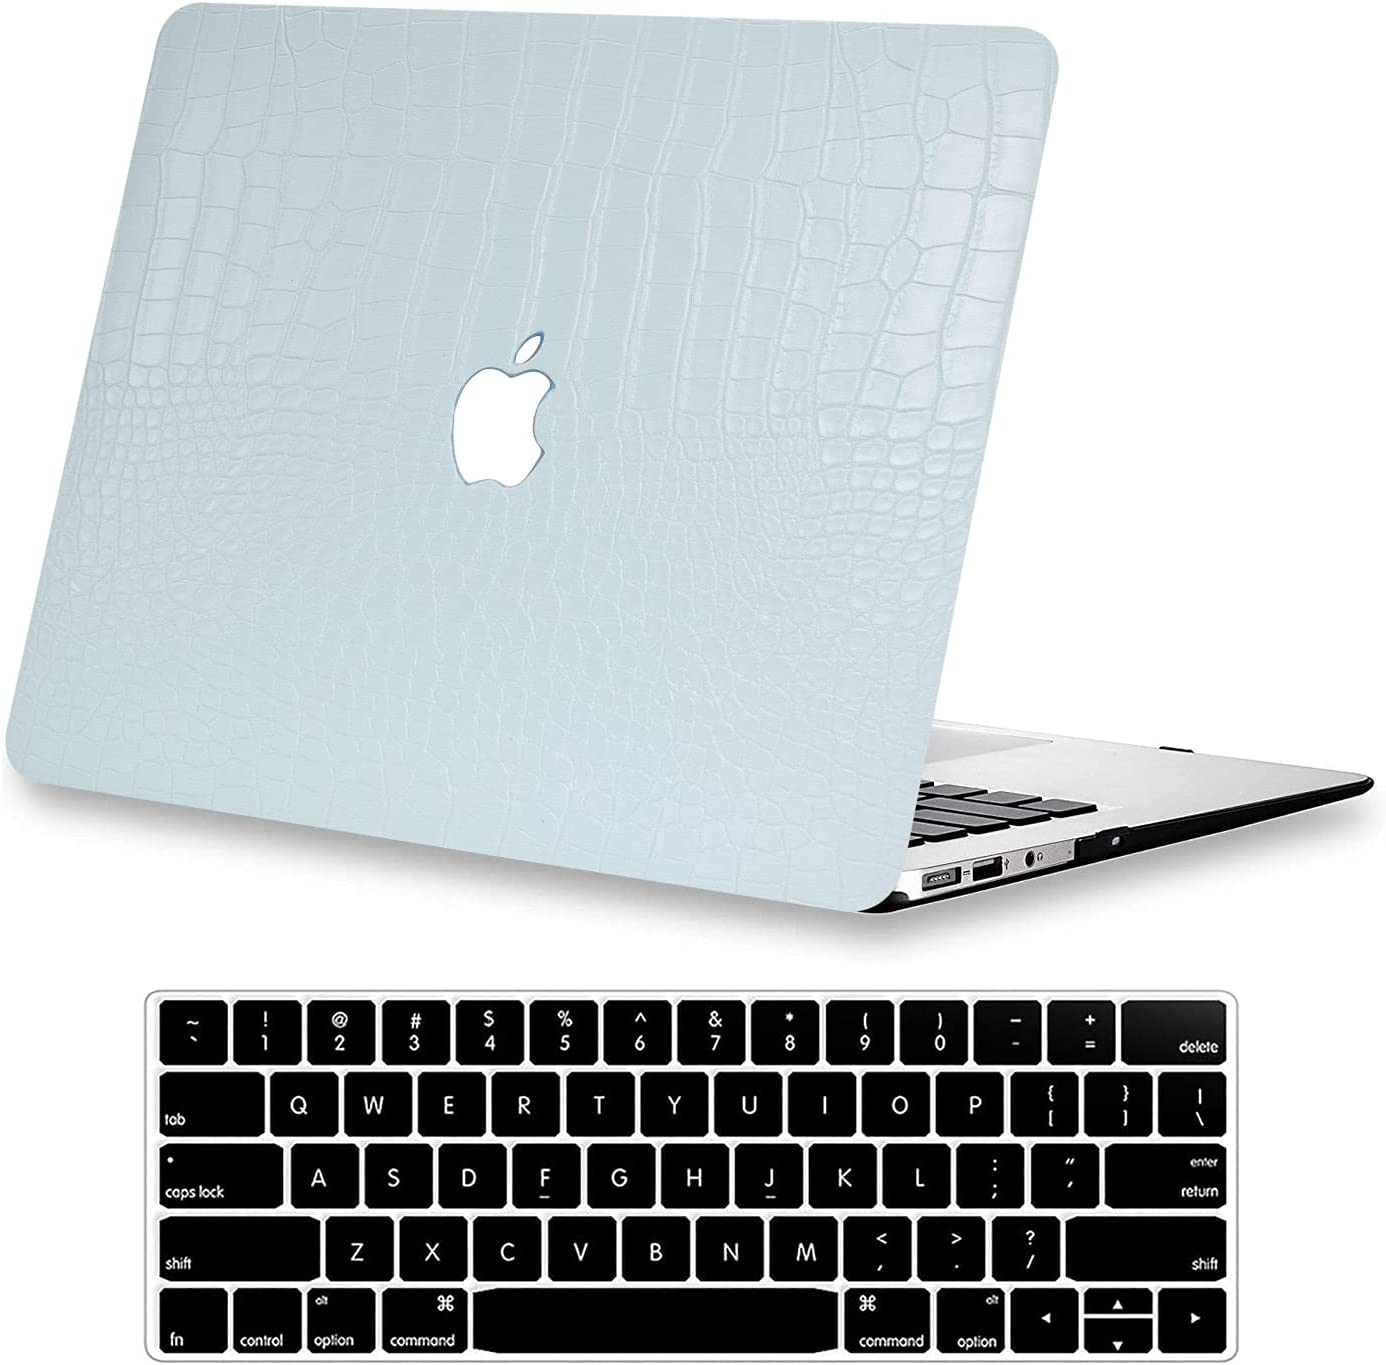 MacBook Pro 13 inch Case M1 A2338 A2289 A2251 A2159 A1989 A1706 A1708, KEROM Crocodile Leather Hard Shell Case with Keyboard Cover fit MacBook Pro 13 inch Case 2020 2019 2018 2017 2016, Mint Green